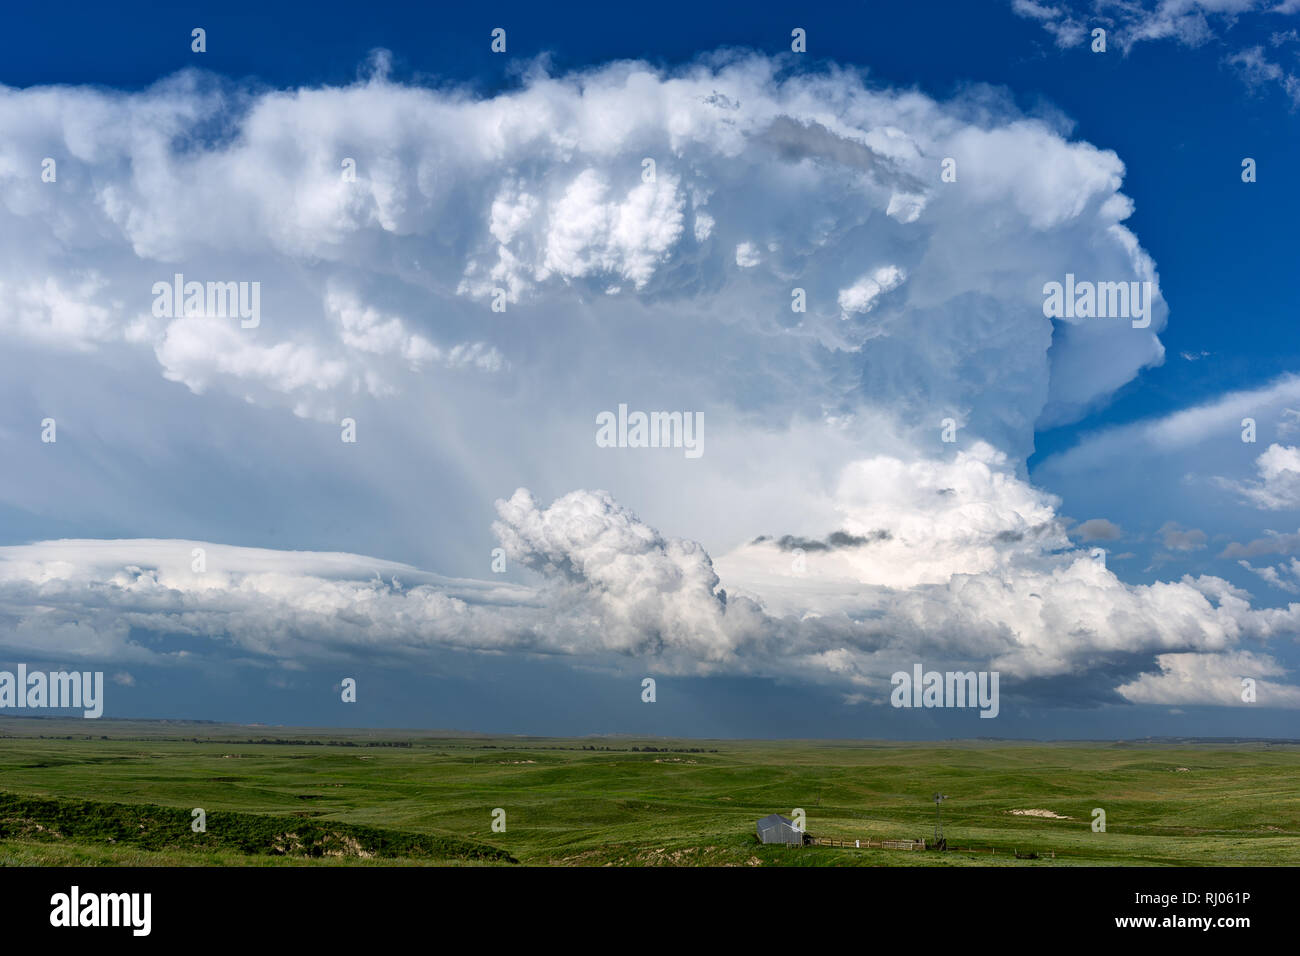 A cumulonimbus thunderstorm cloud in the afternoon sky above Lusk, Wyoming. - Stock Image